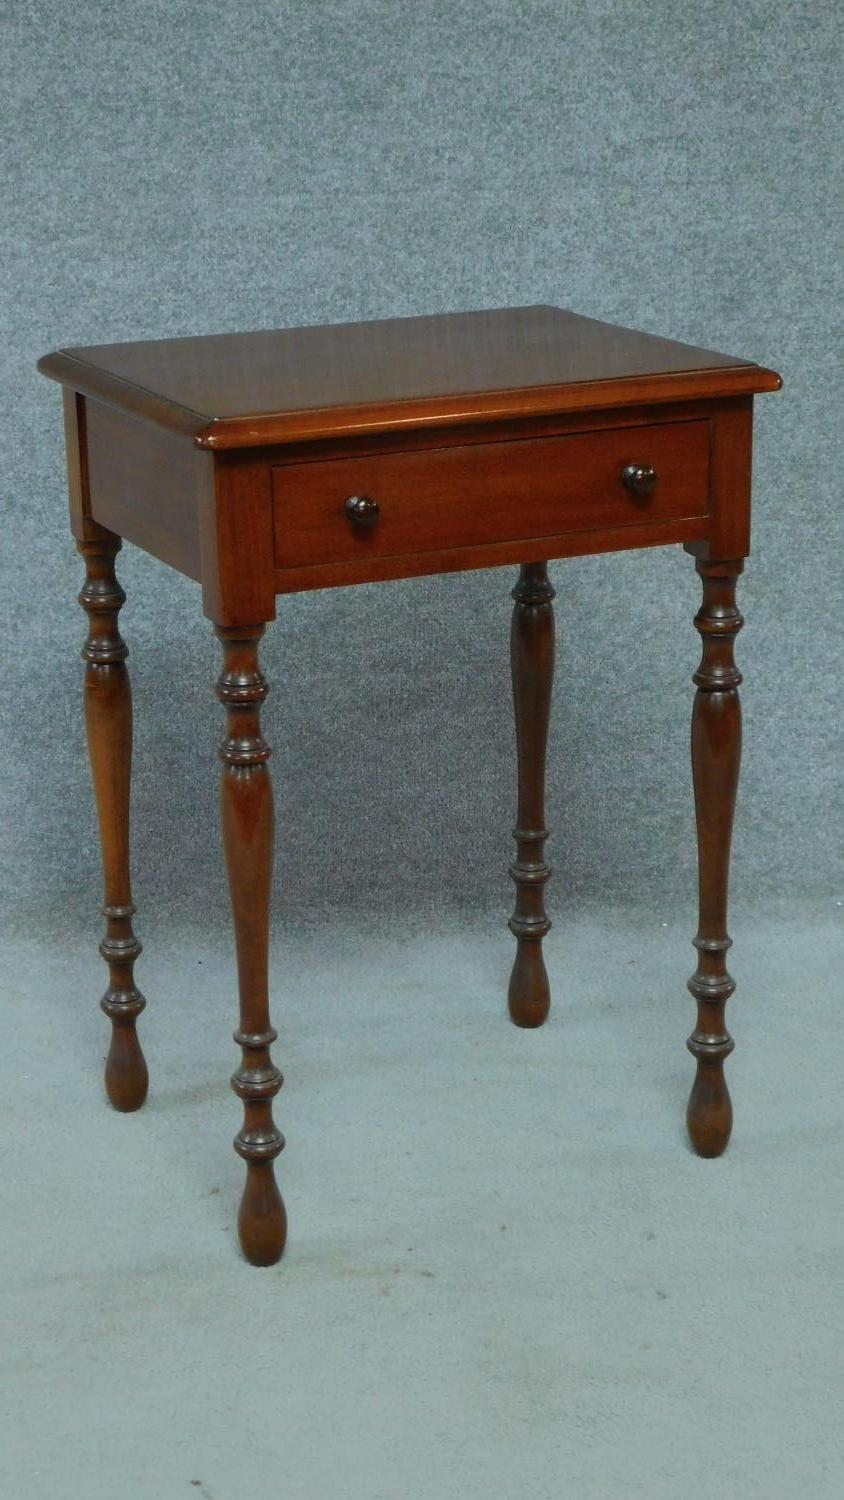 A late 19th century mahogany bedside table with frieze drawer, raised on turned tapering supports. - Image 3 of 5